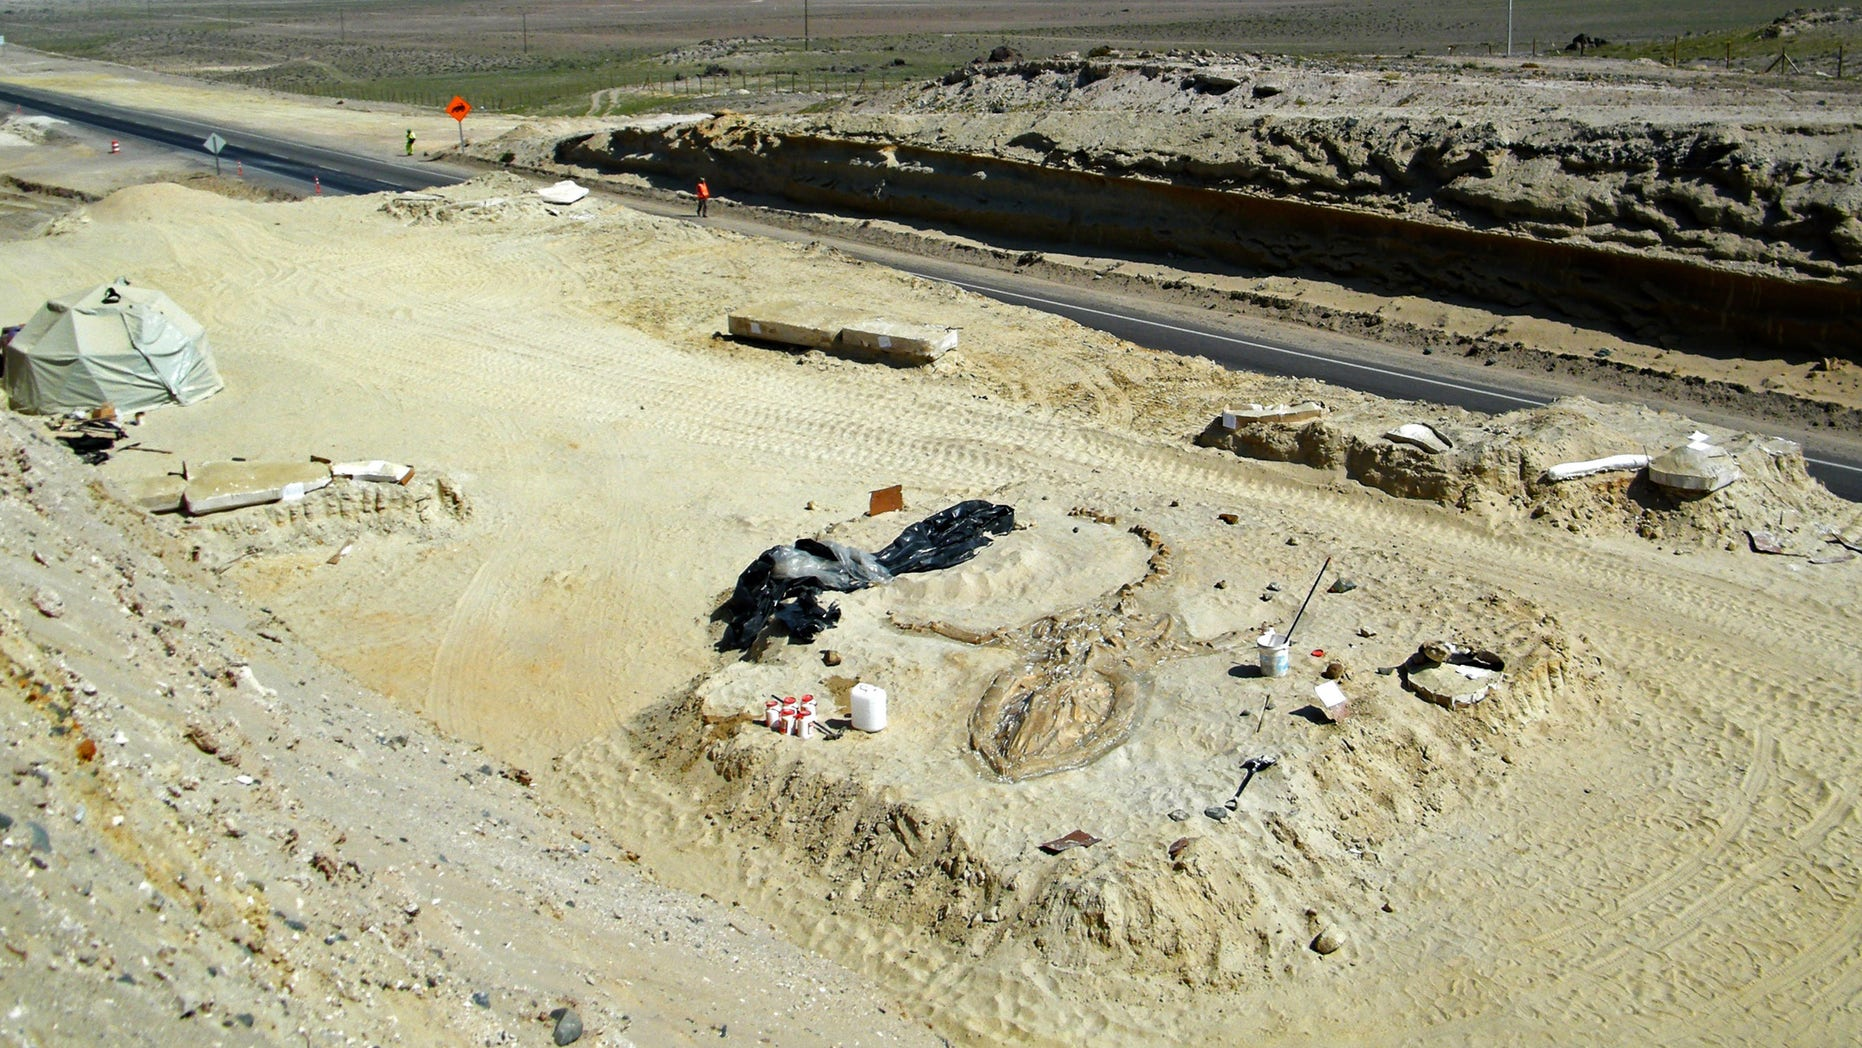 FILE - In this Aug. 24, 2010 FILE photo released by Chile's Paleontological Museum of Caldera, a prehistoric whale fossil lays in the Atacama desert near Copiapo, Chile. A team of Chilean and Smithsonian Institution scientists investigating the graveyard of marine mammal fossils say toxins generated by algae blooms most likely poisoned the animals millions of years ago. The study by a team of Chilean and Smithsonian Institution scientists was published Wednesday, Feb. 26, 2014 in the journal Proceedings of the Royal Society B. (AP Photo/Museo Paleontologico de Caldera, File)